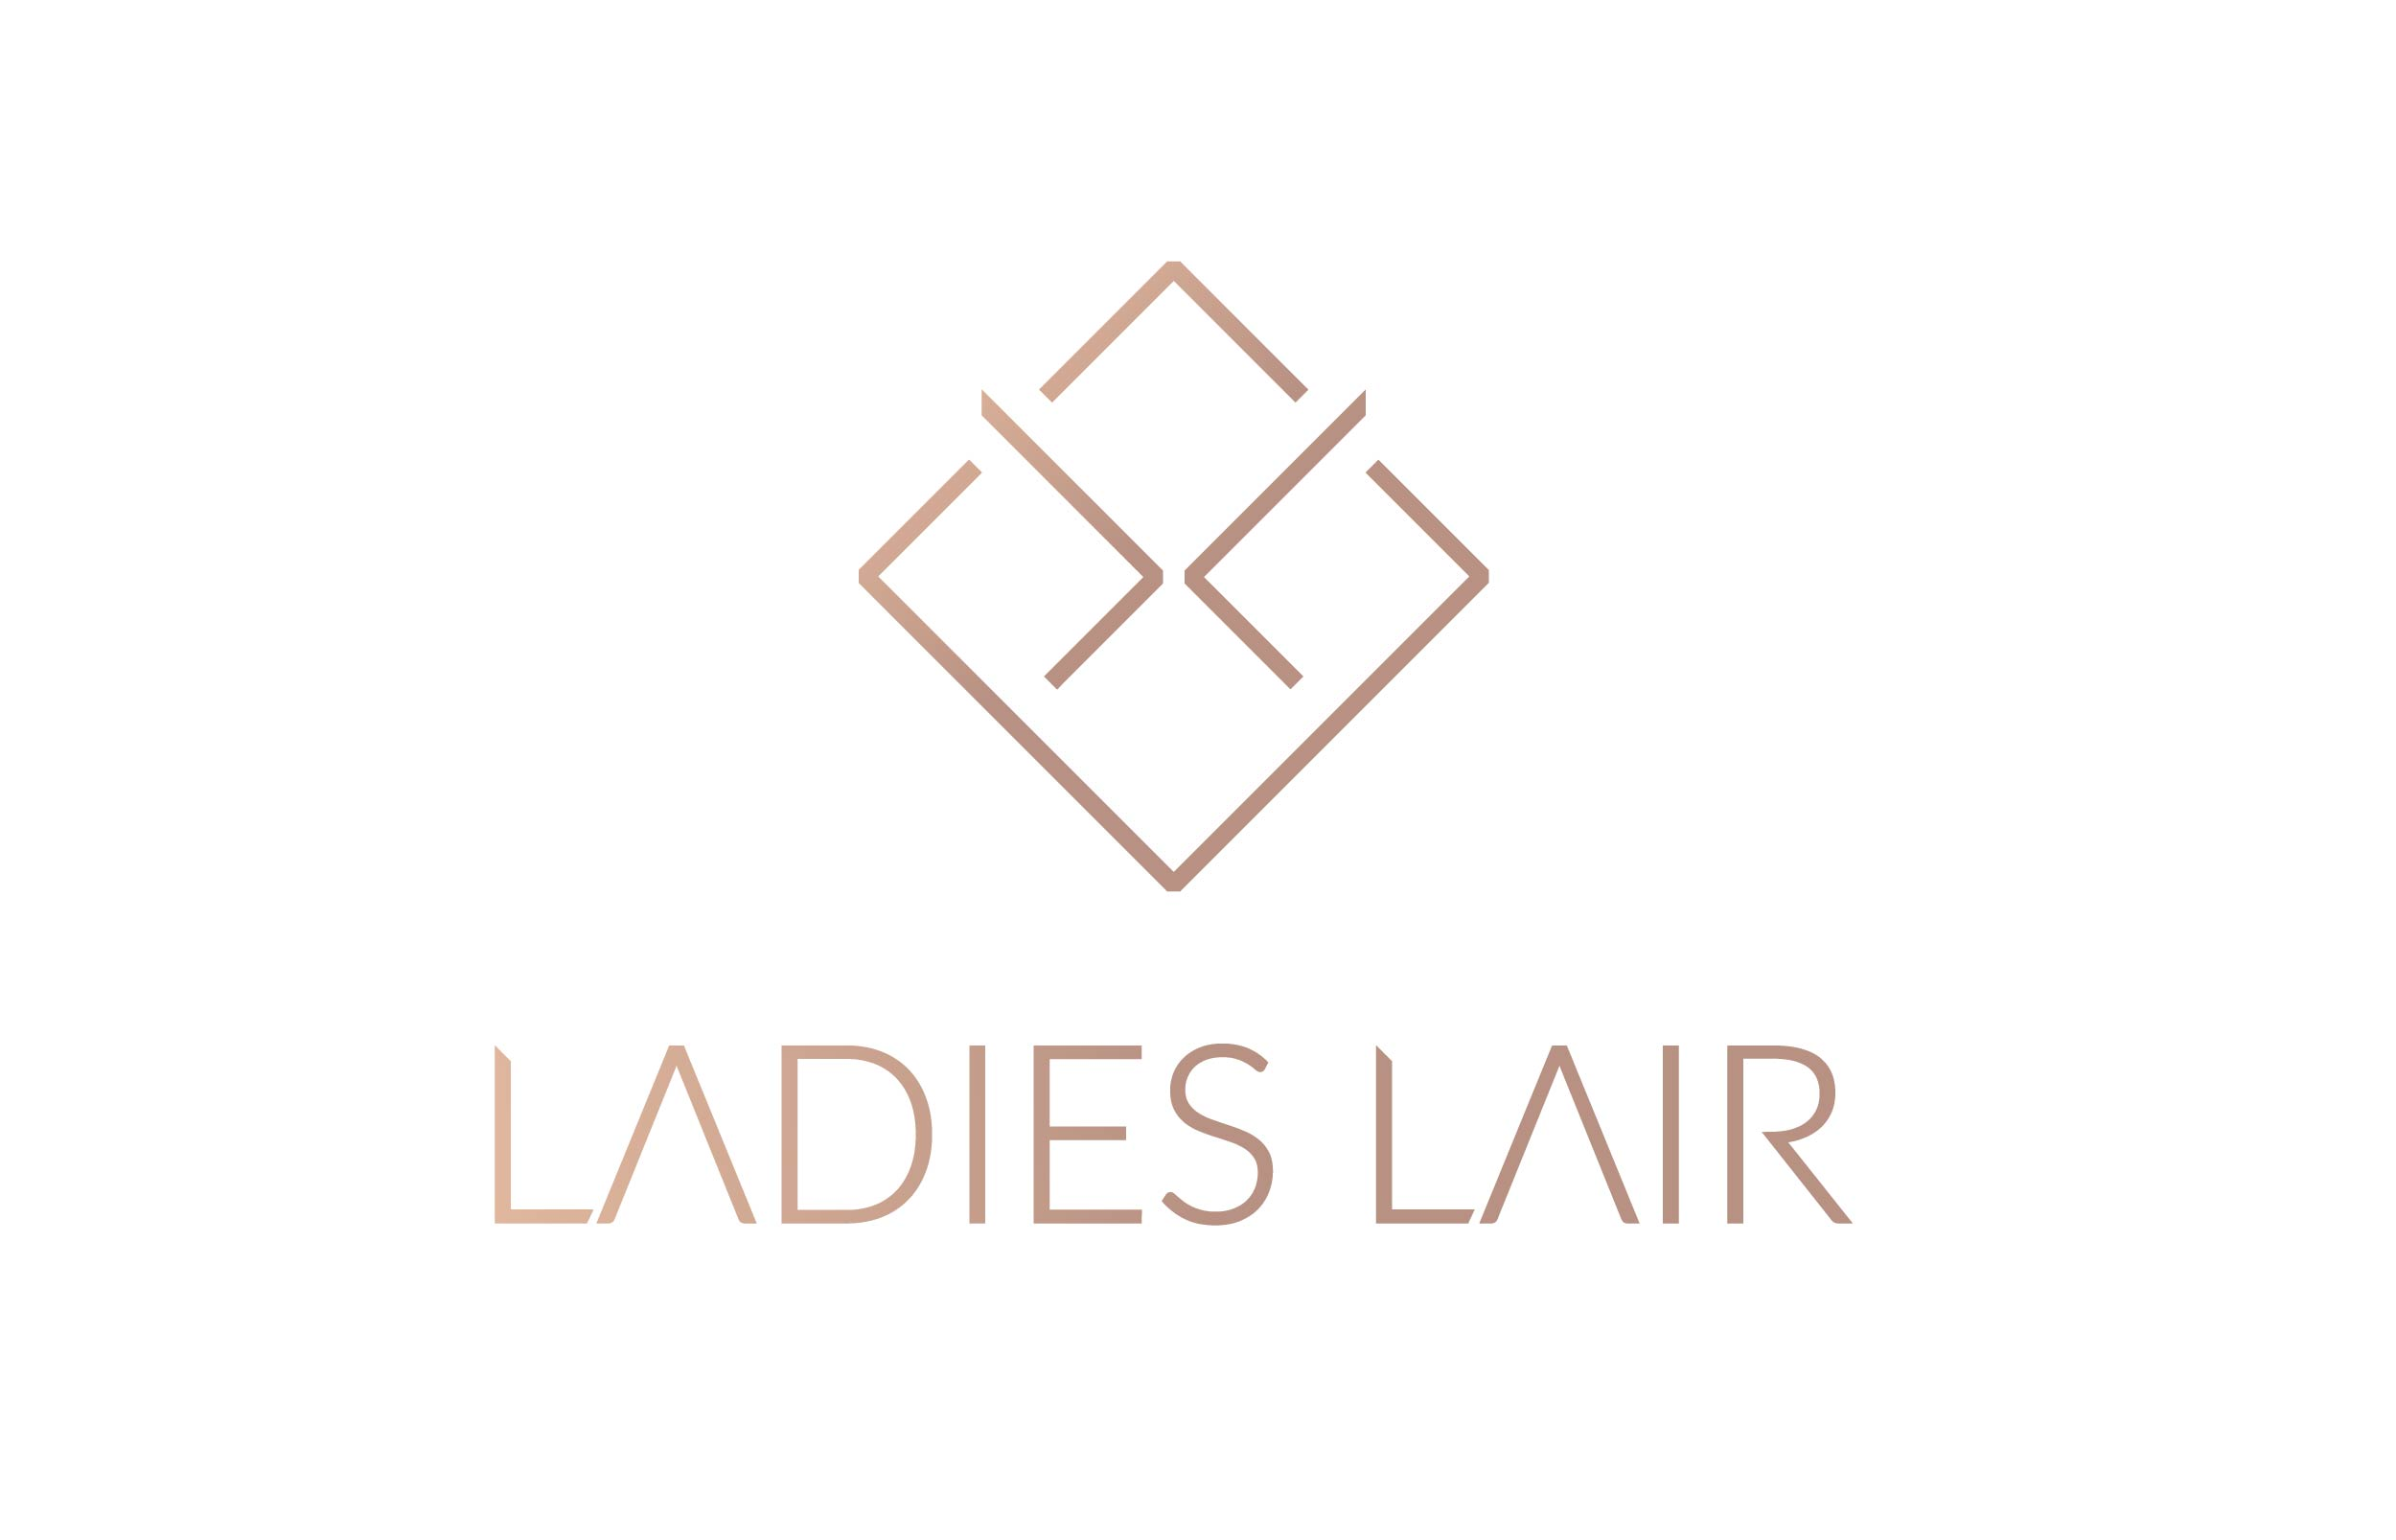 Ladies Lair